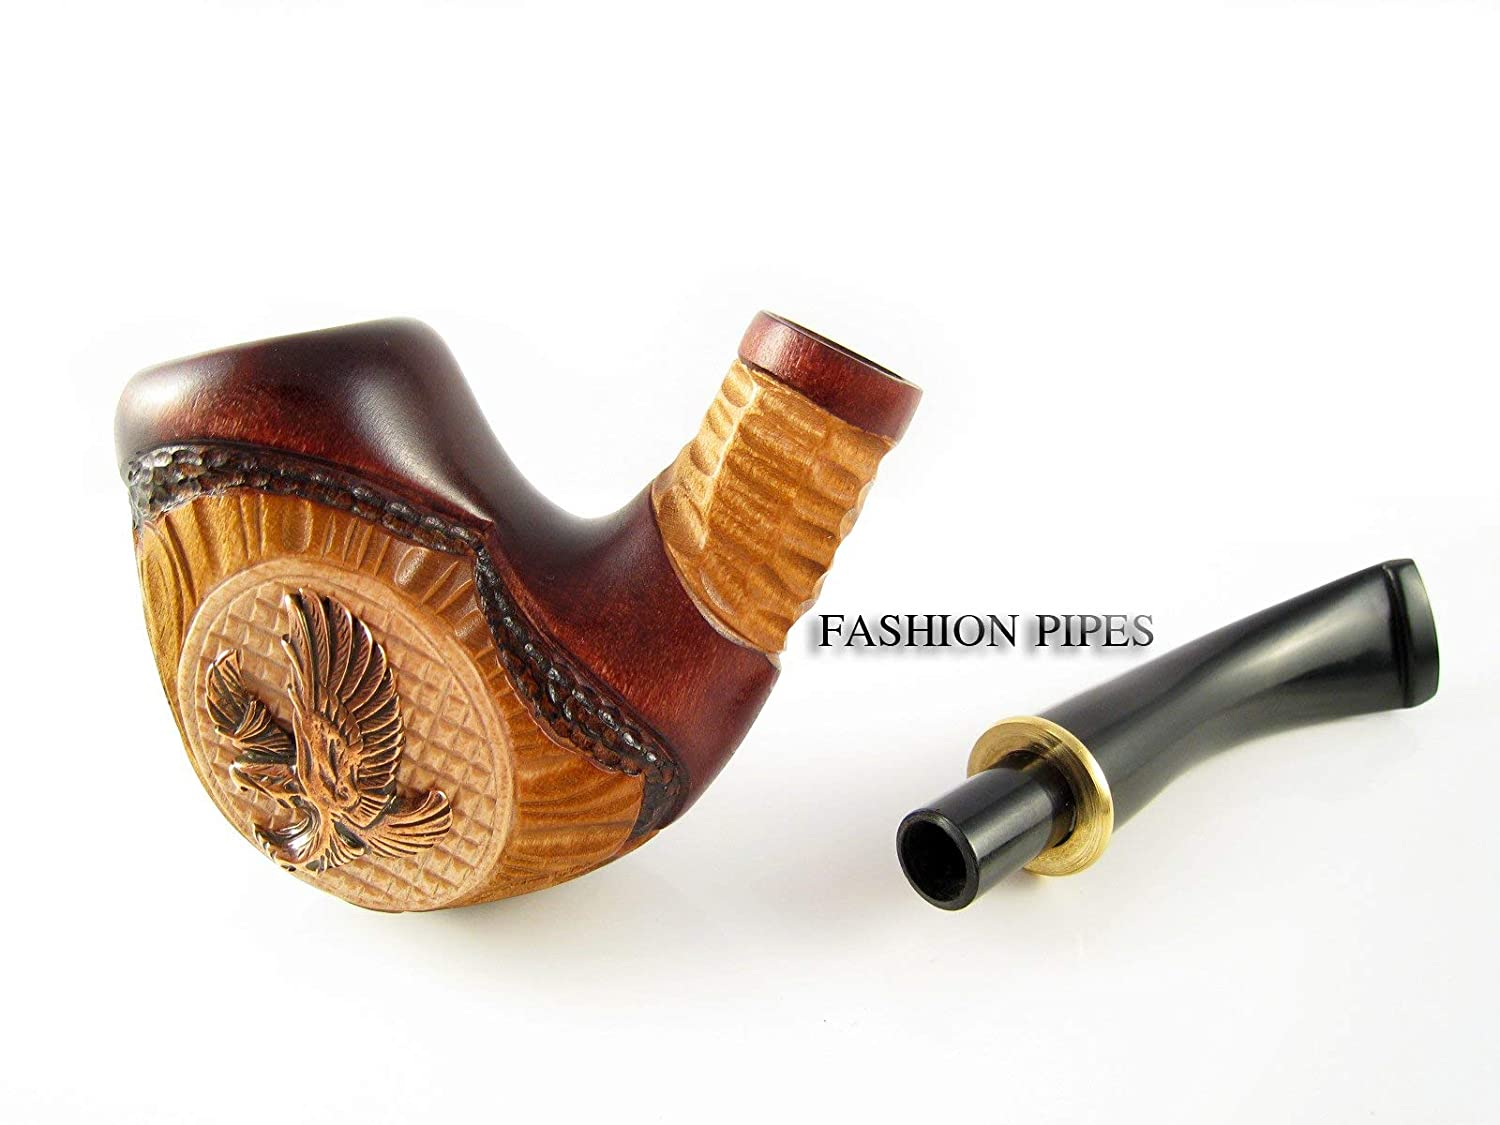 Pouch Gift! Fashion NEW metalAmerican Eagle Tobacco Smoking Pipe Carved Pear Root